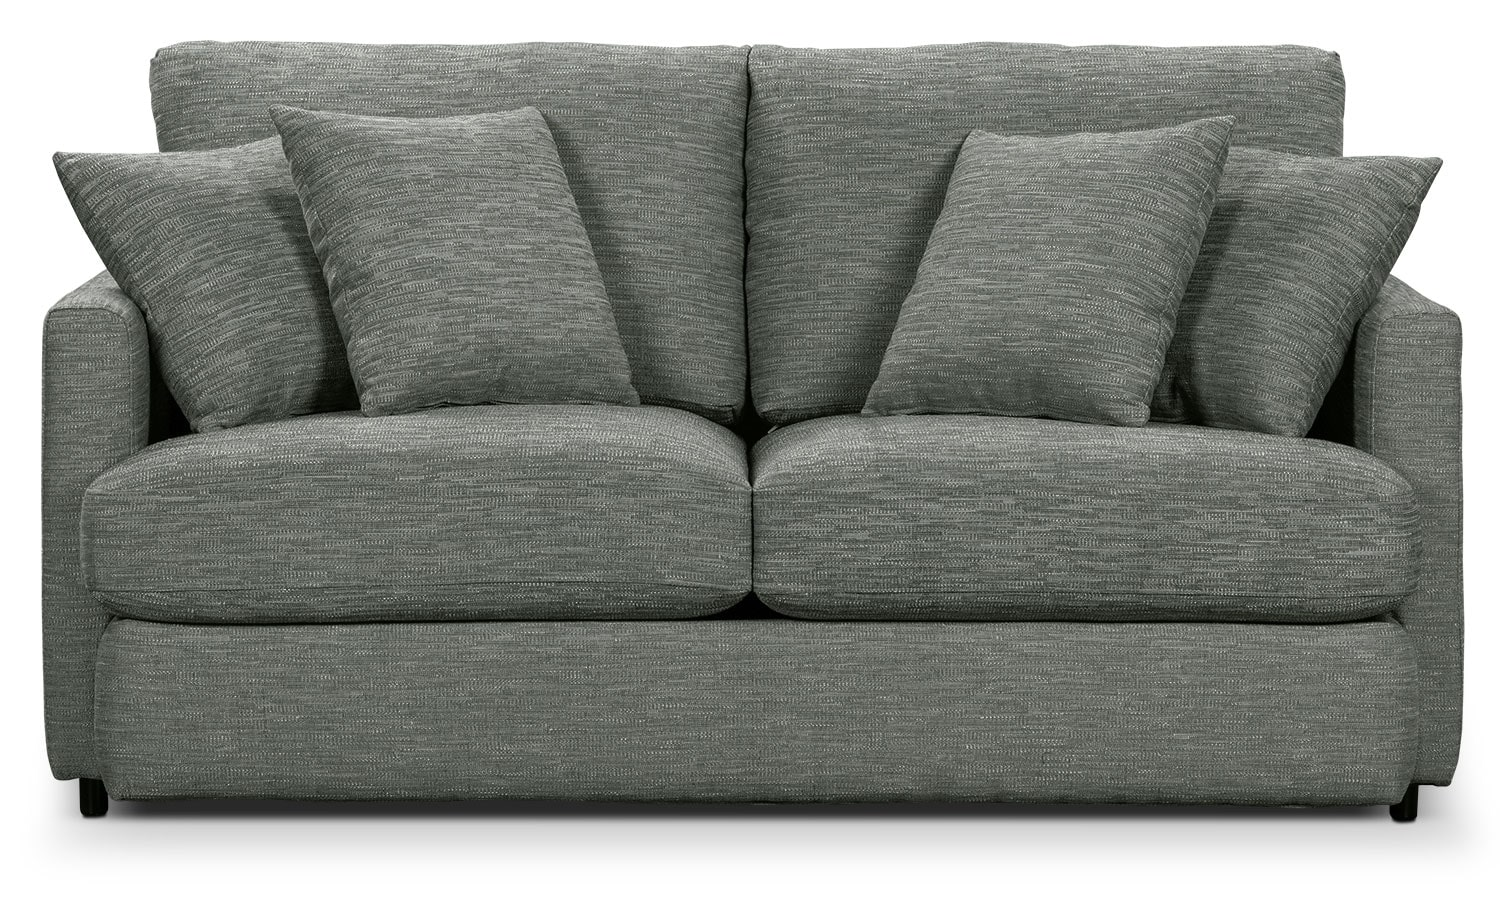 Living Room Furniture - Urbana Chenille Studio-Size Sofa - Dark Grey